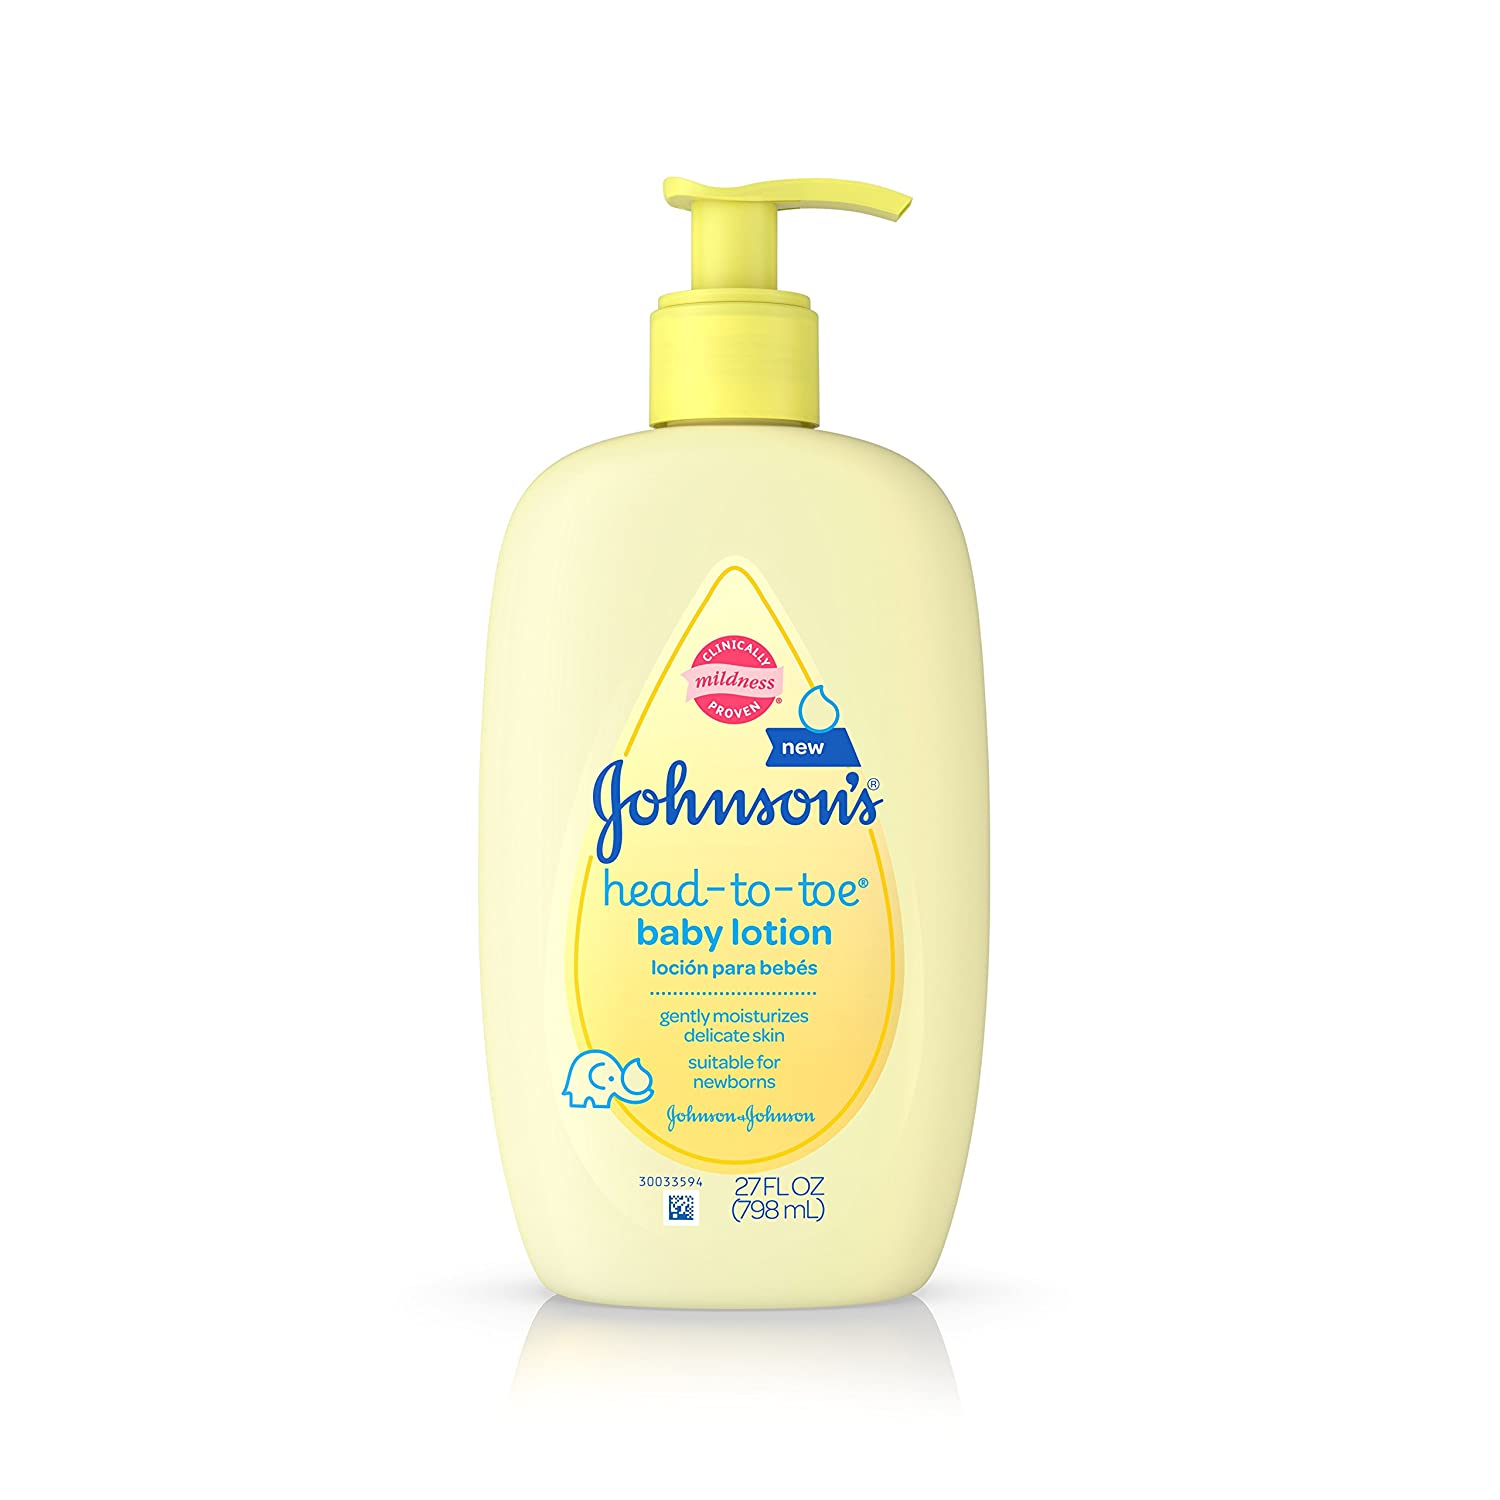 Johnson's Head-to-Toe Baby Lotion, 27 Fl. Oz (Pack of 3)